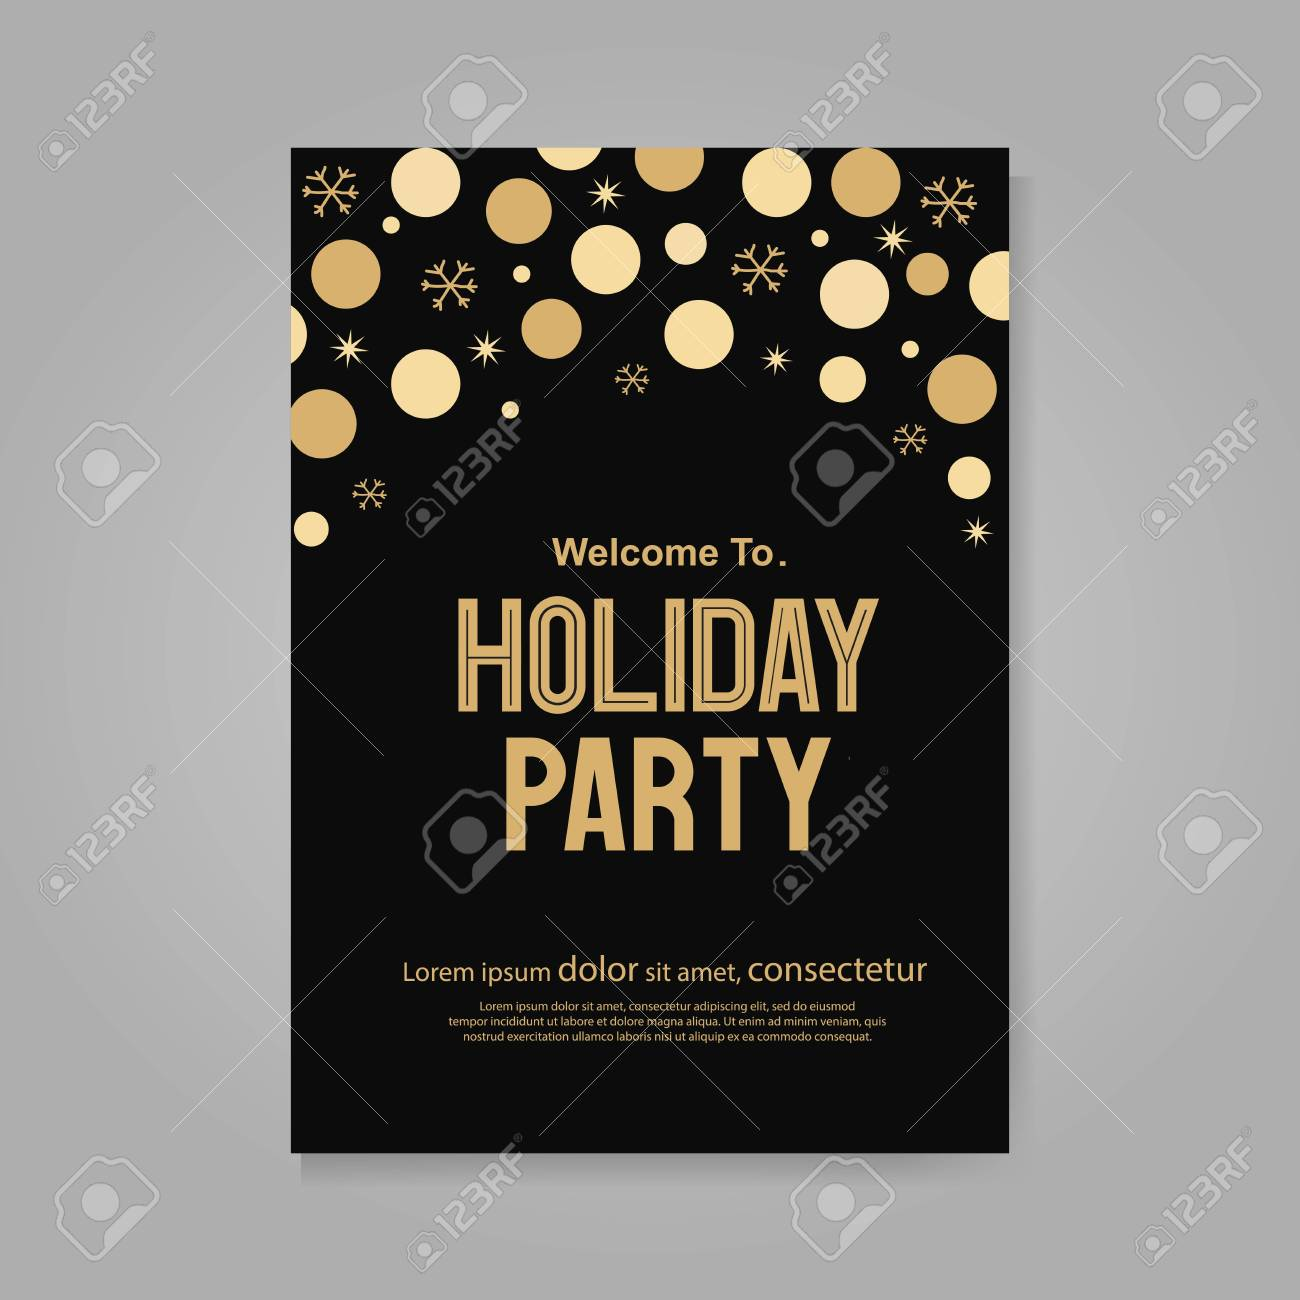 vector vector illustration design for holiday party and happy new year party invitation flyer and greeting card template